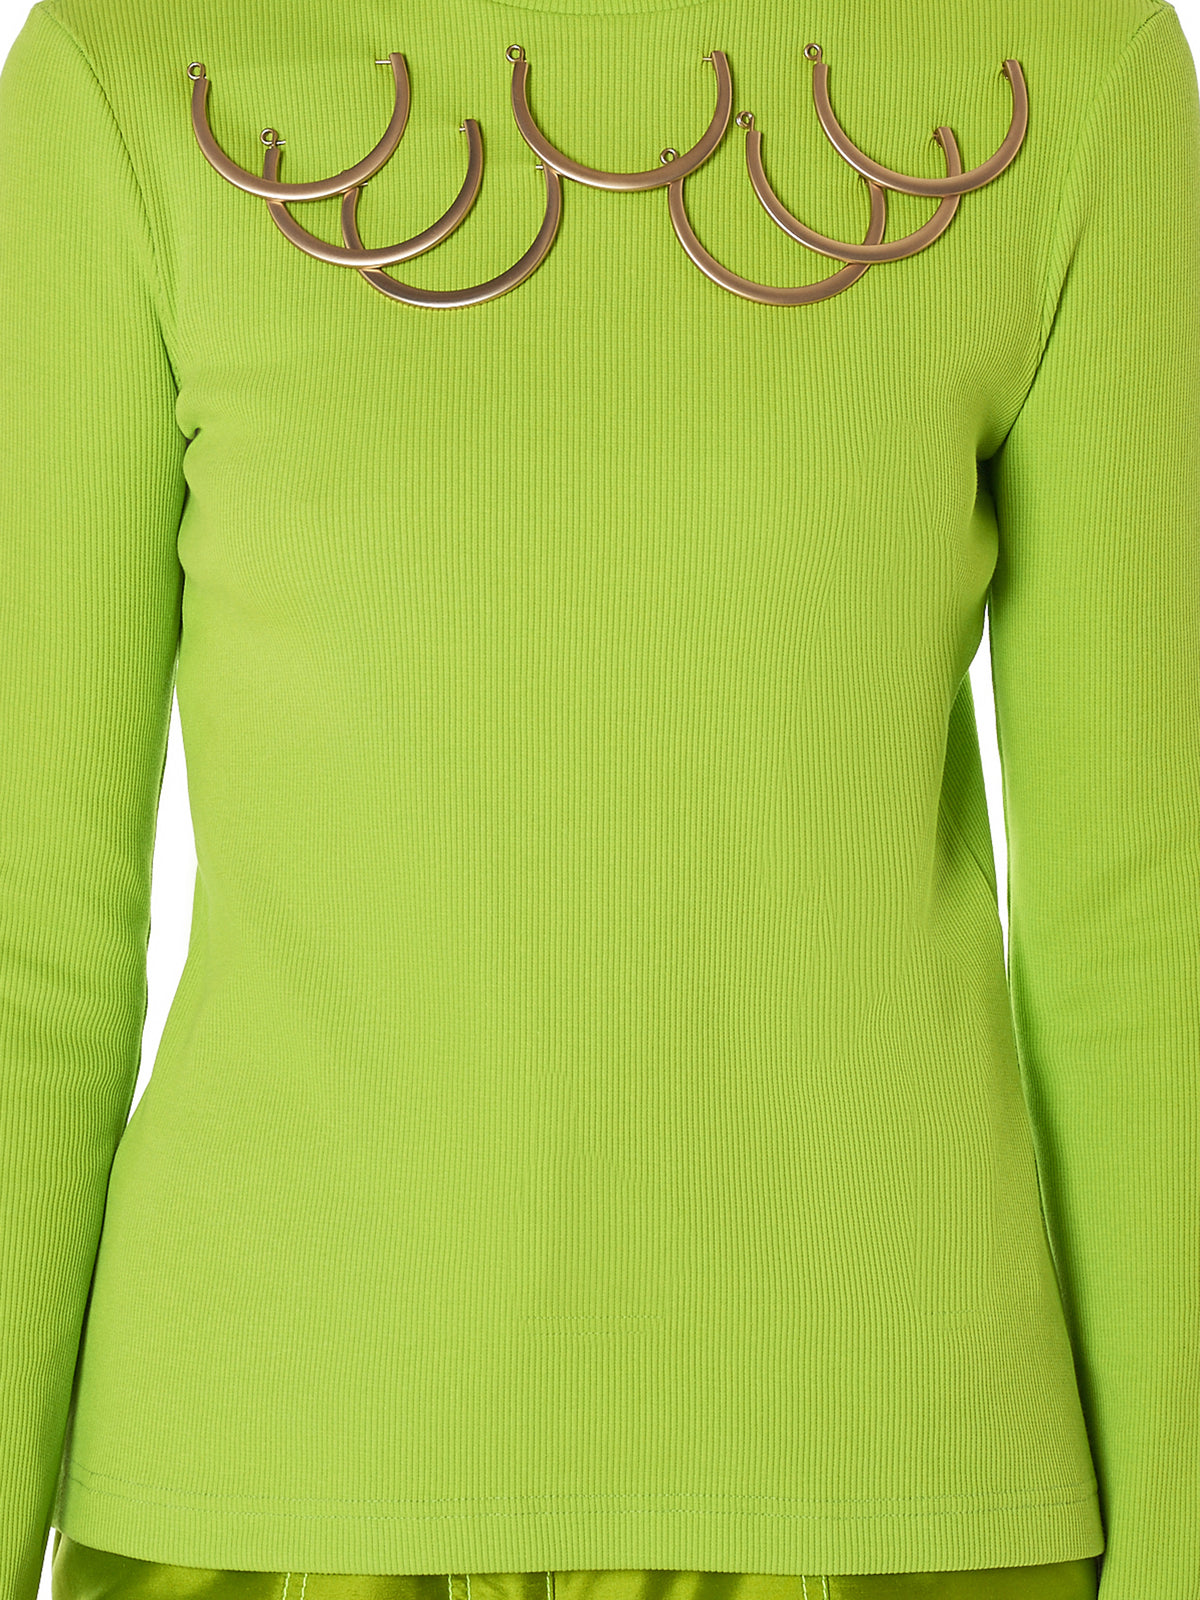 Kreist Turtleneck Green Top - Hlorenzo Detail 2